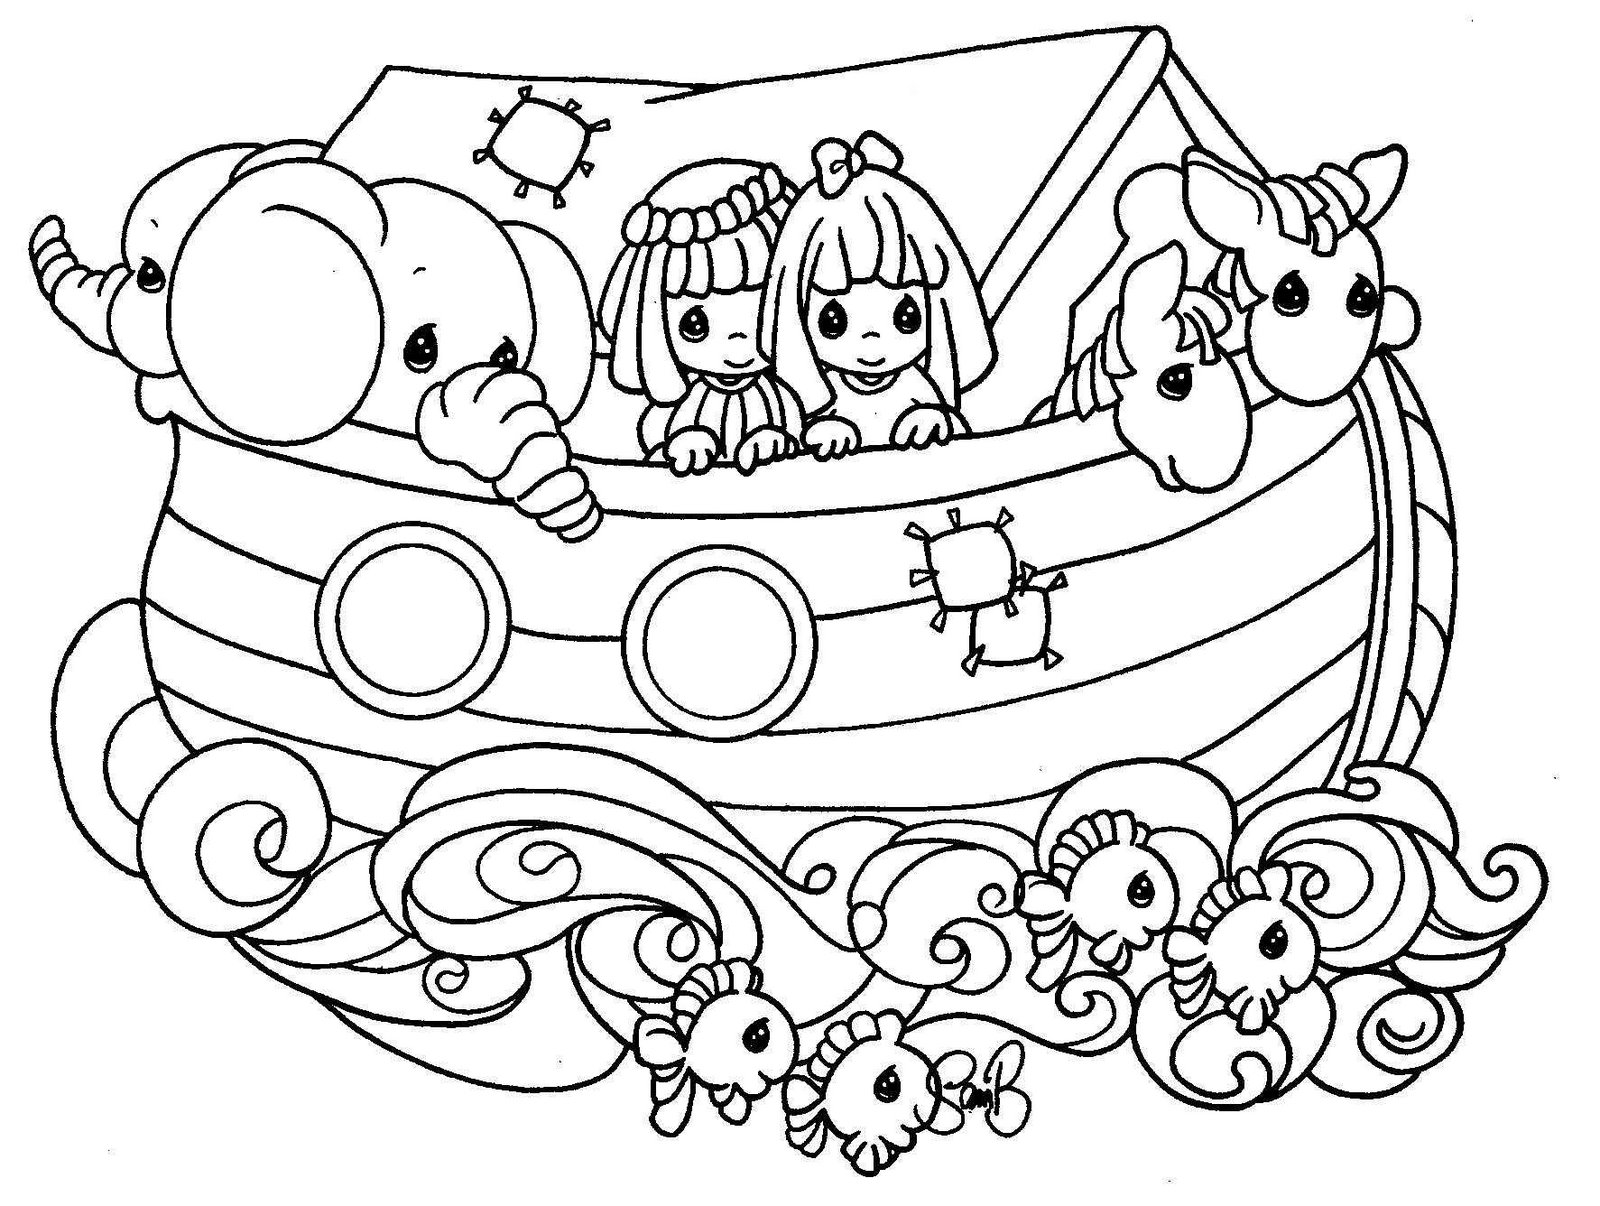 u sa ha na coloring pages - photo #42